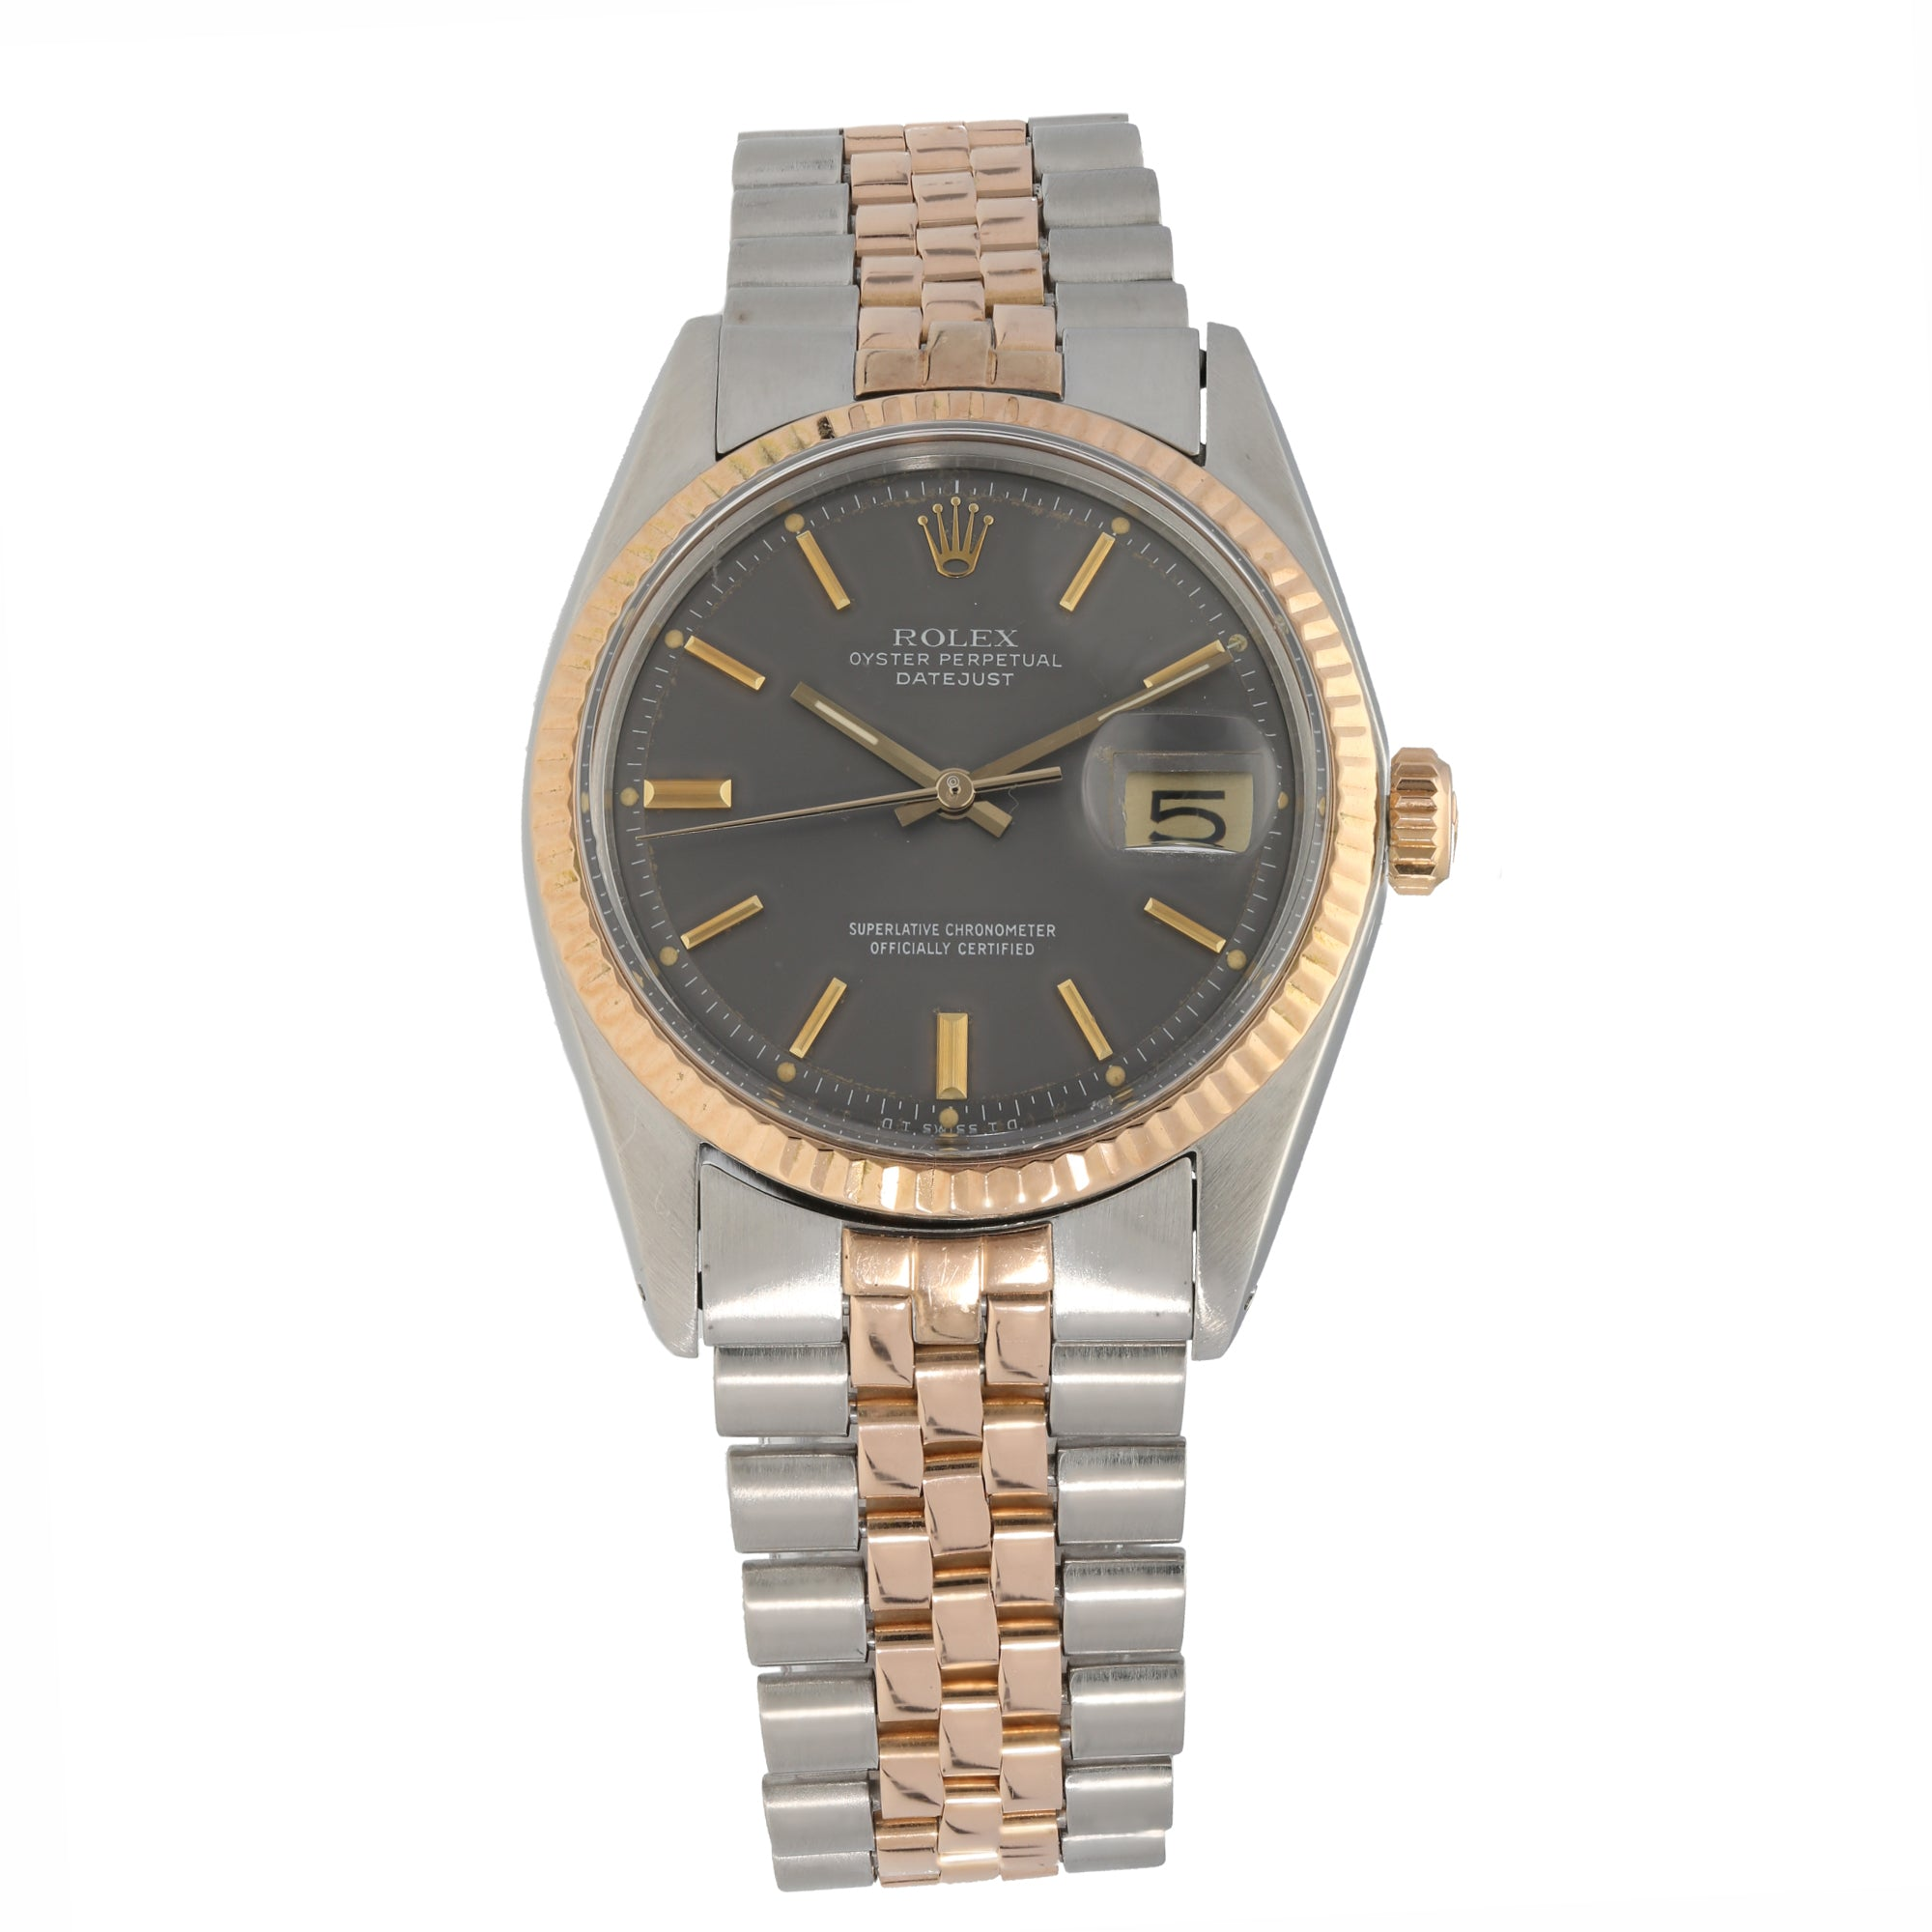 Rolex Datejust 1601 36mm Bi-Colour Men's Watch